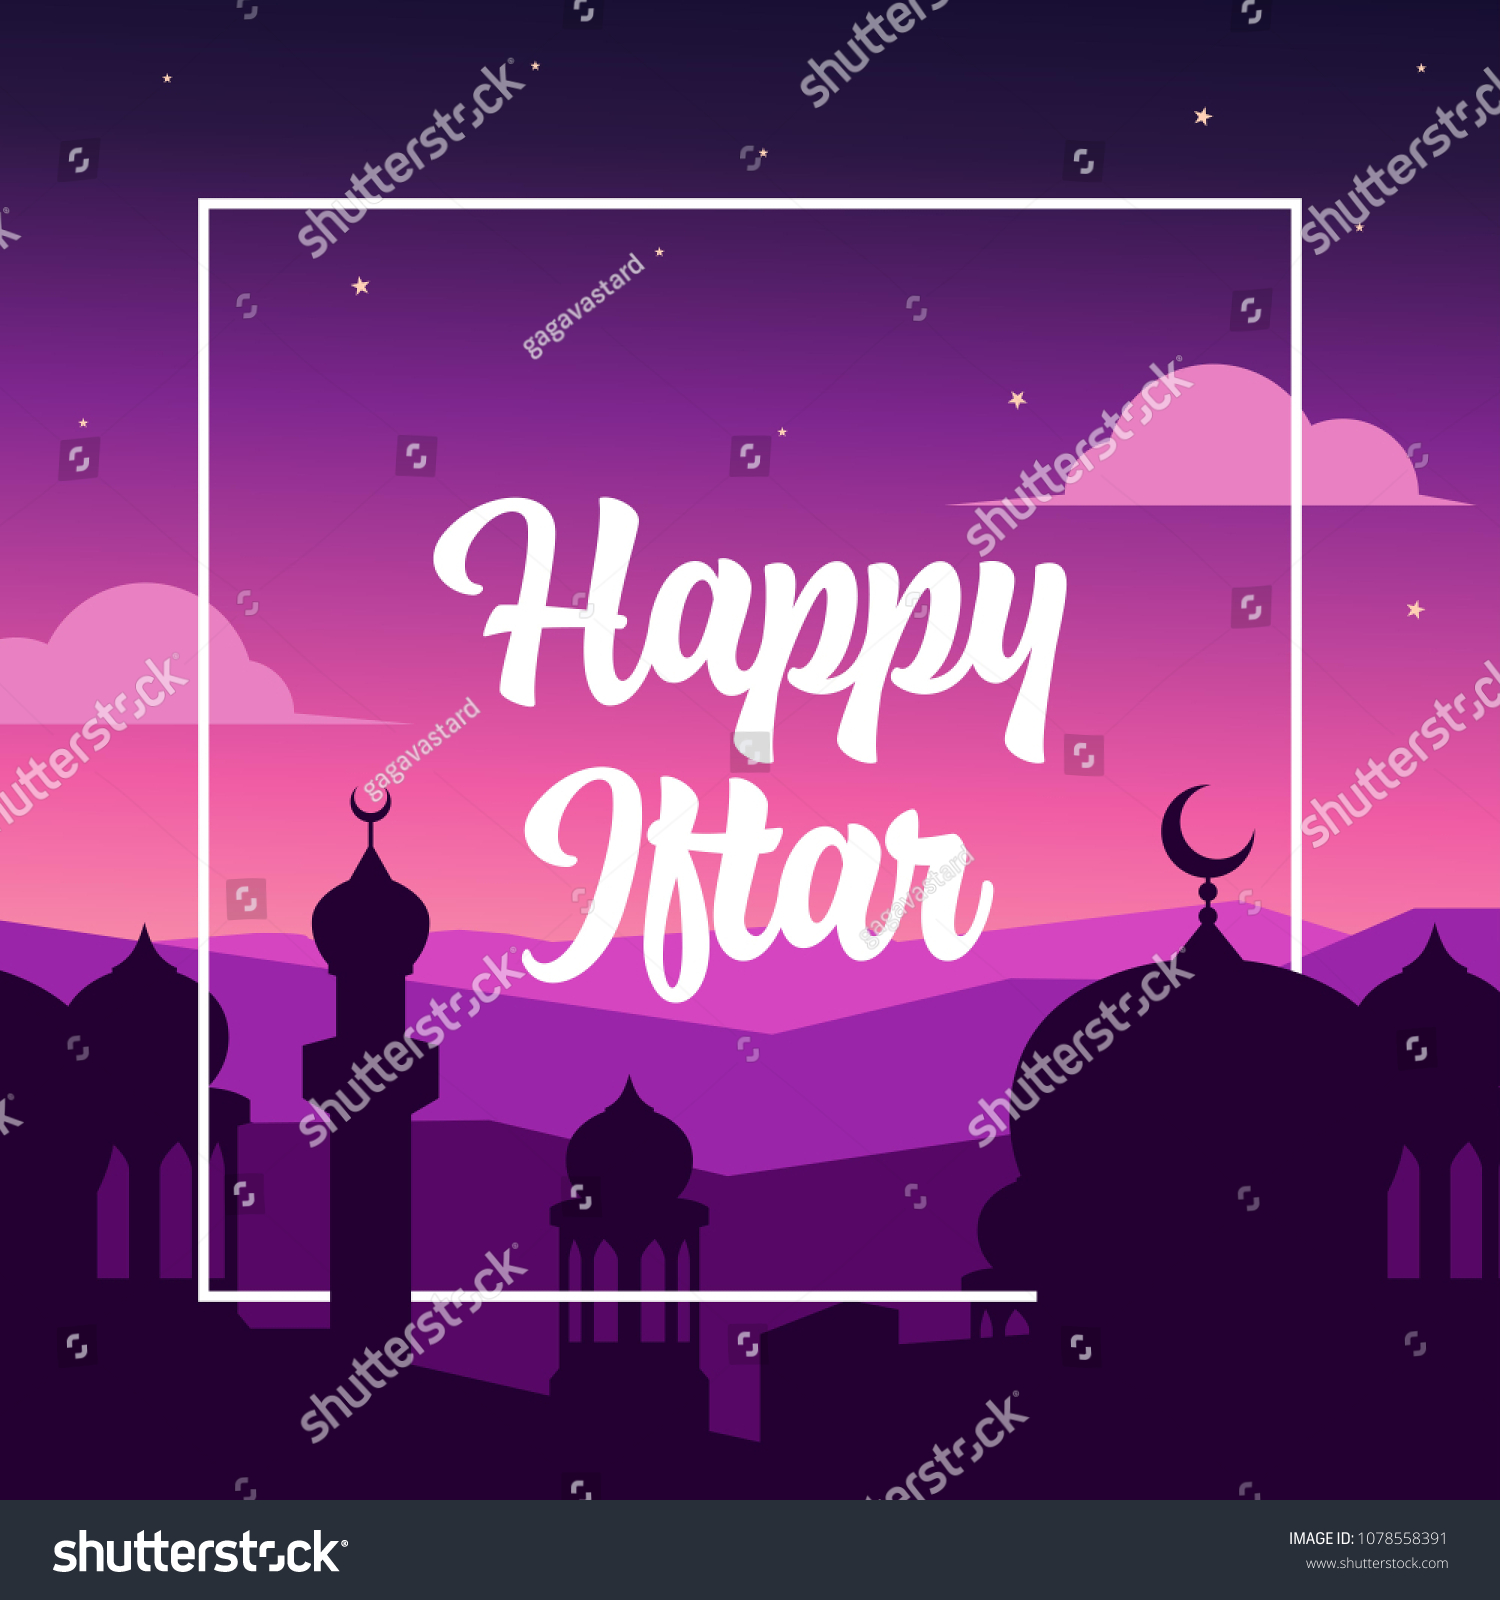 Download Instagram Ramadan - stock-vector-happy-iftar-party-ramadan-kareem-instagram-post-greeting-card-flat-vector-illustration-1078558391  Pic_39418 .jpg